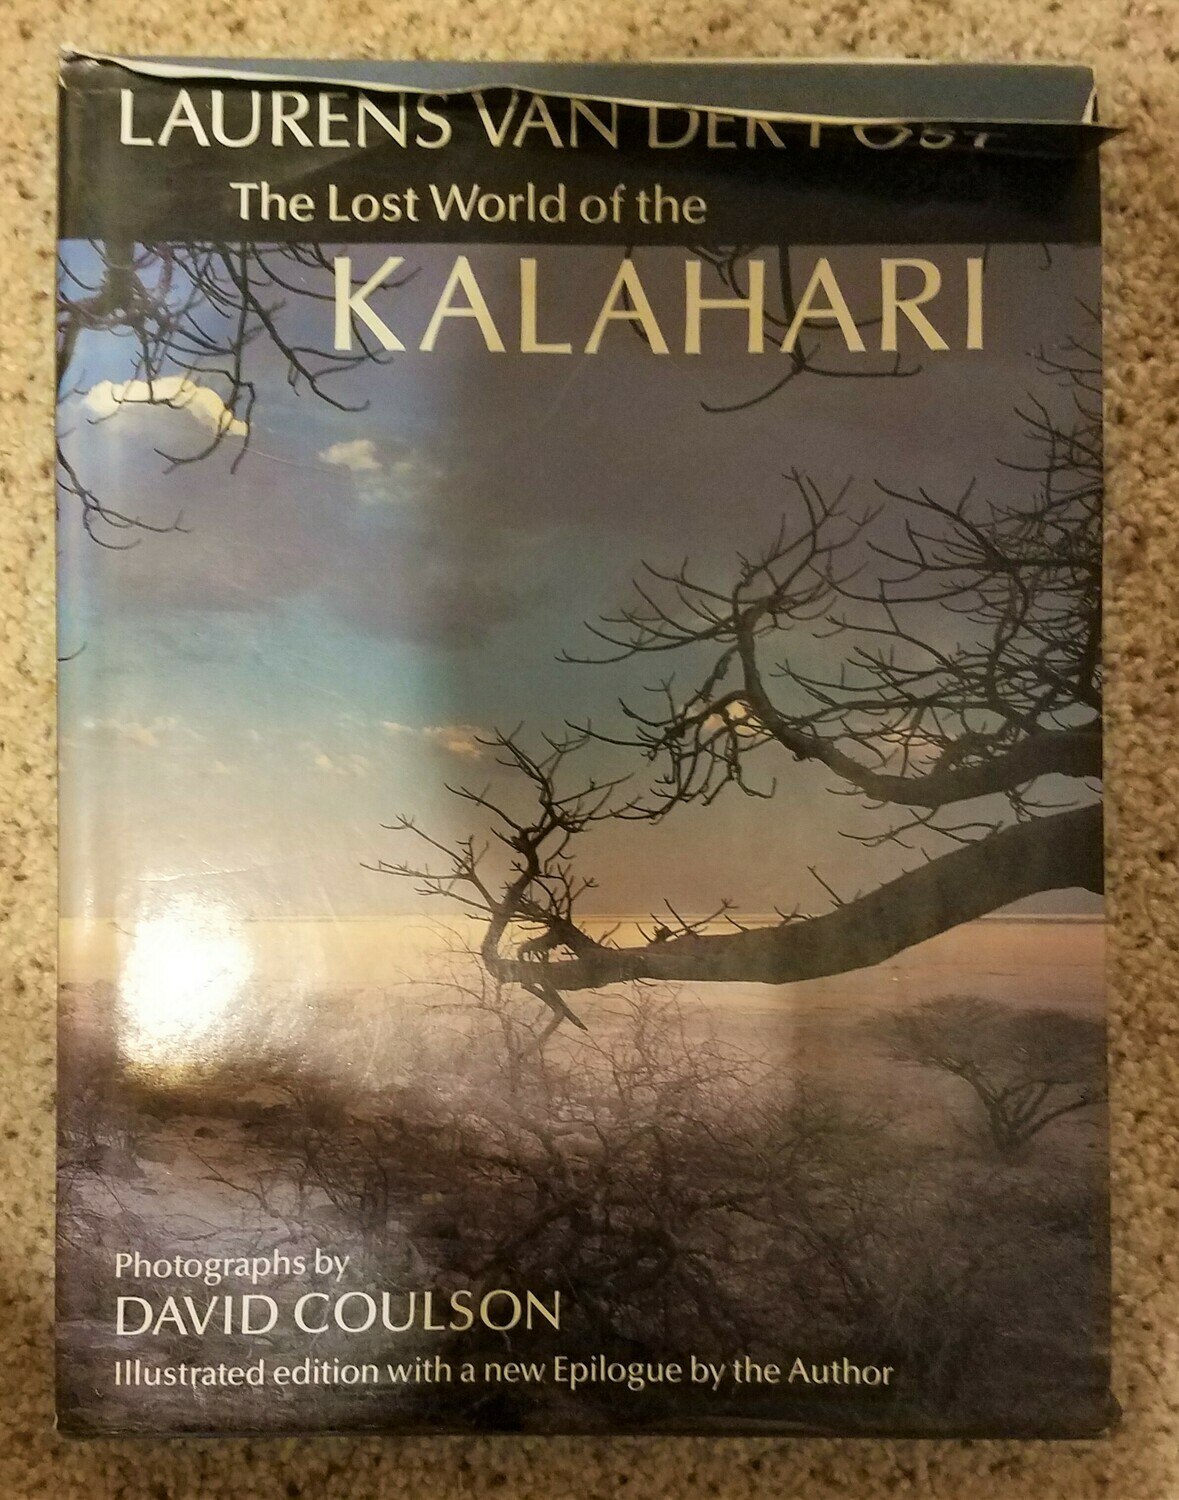 The Lost World of the Kalahari by Laurens Van Der Post and David Coulson